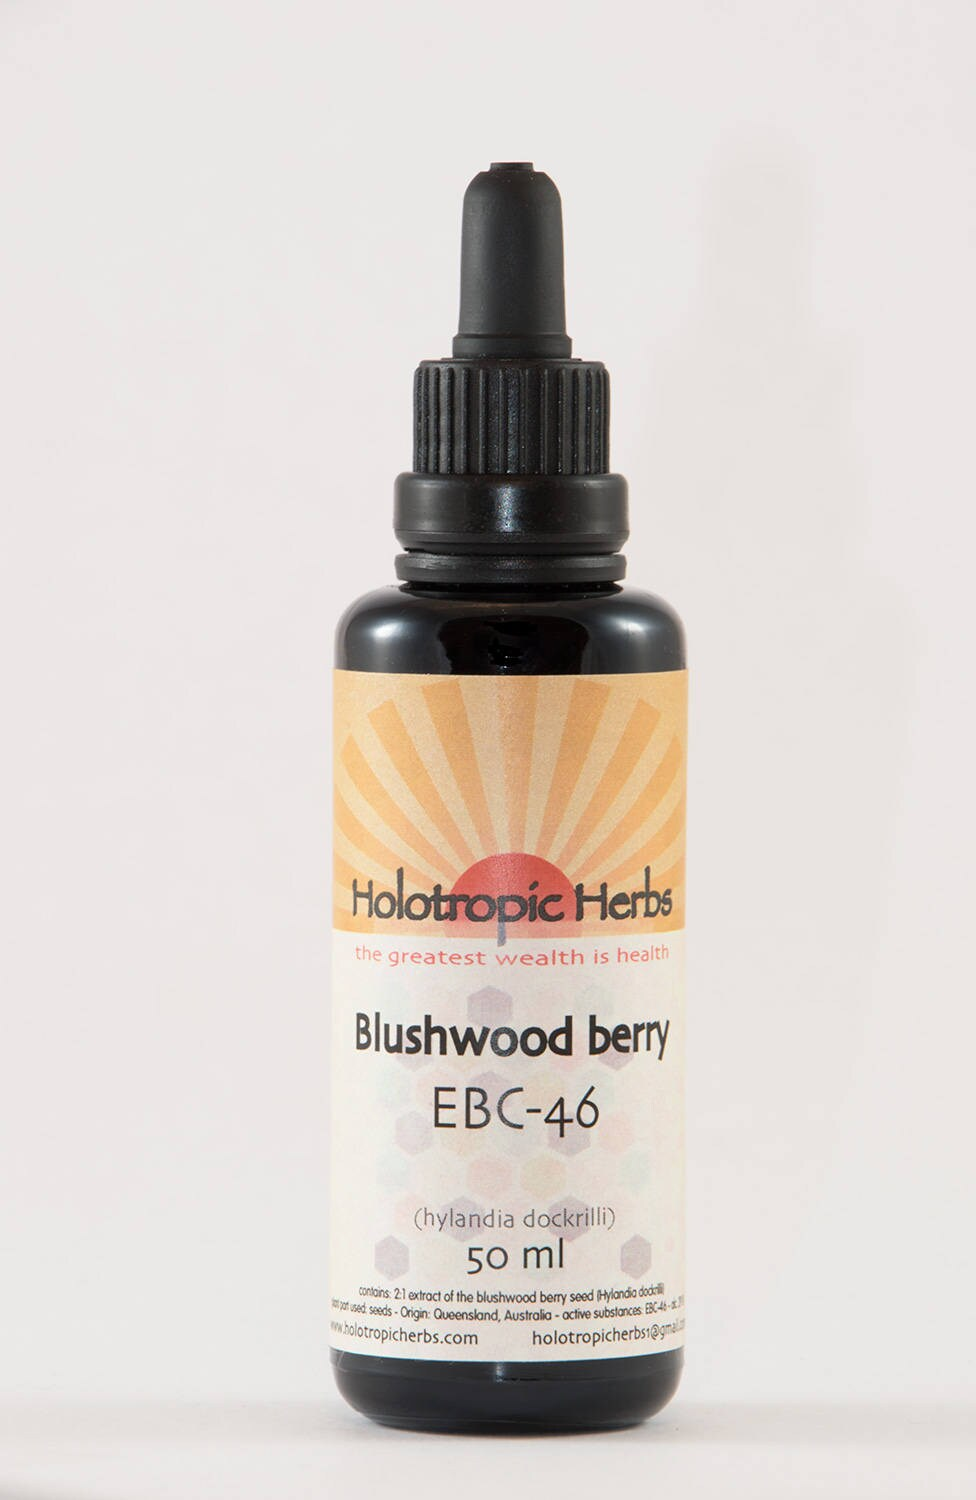 Blushwood berry tincture 50 ml Hylandia dockrilli All